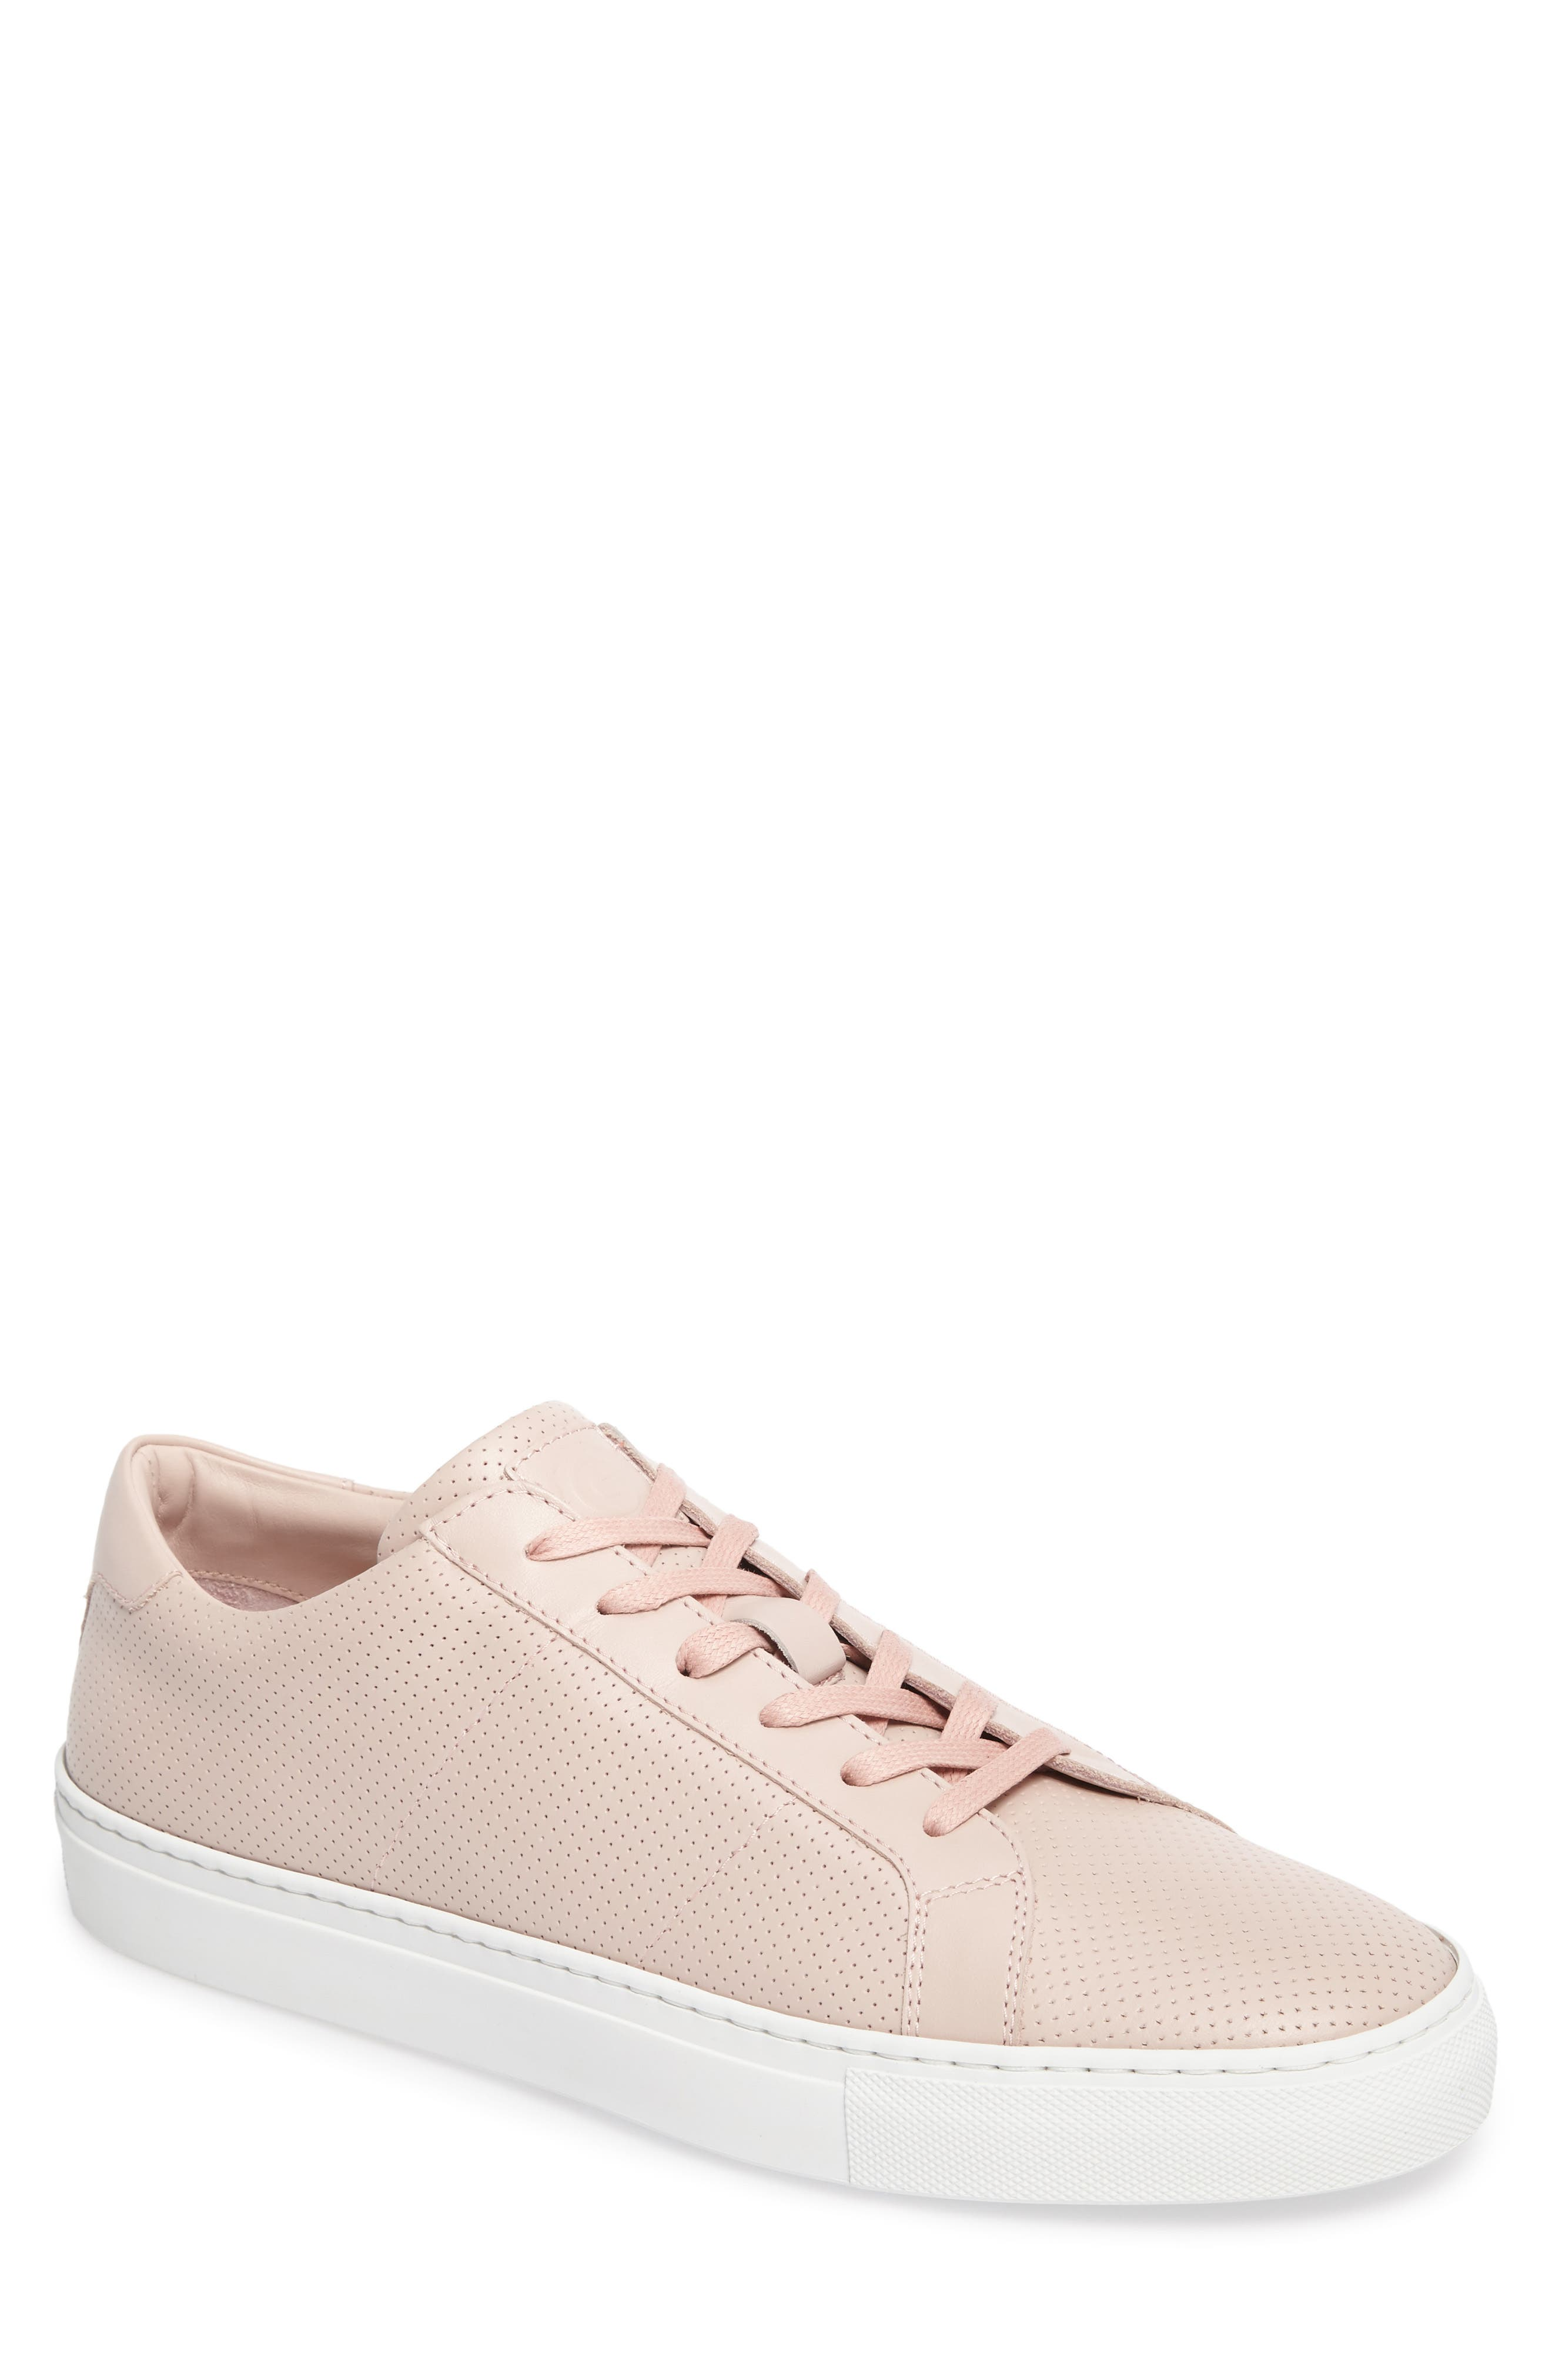 Royale Perforated Low Top Sneaker,                             Main thumbnail 1, color,                             BLUSH PERFORATED LEATHER